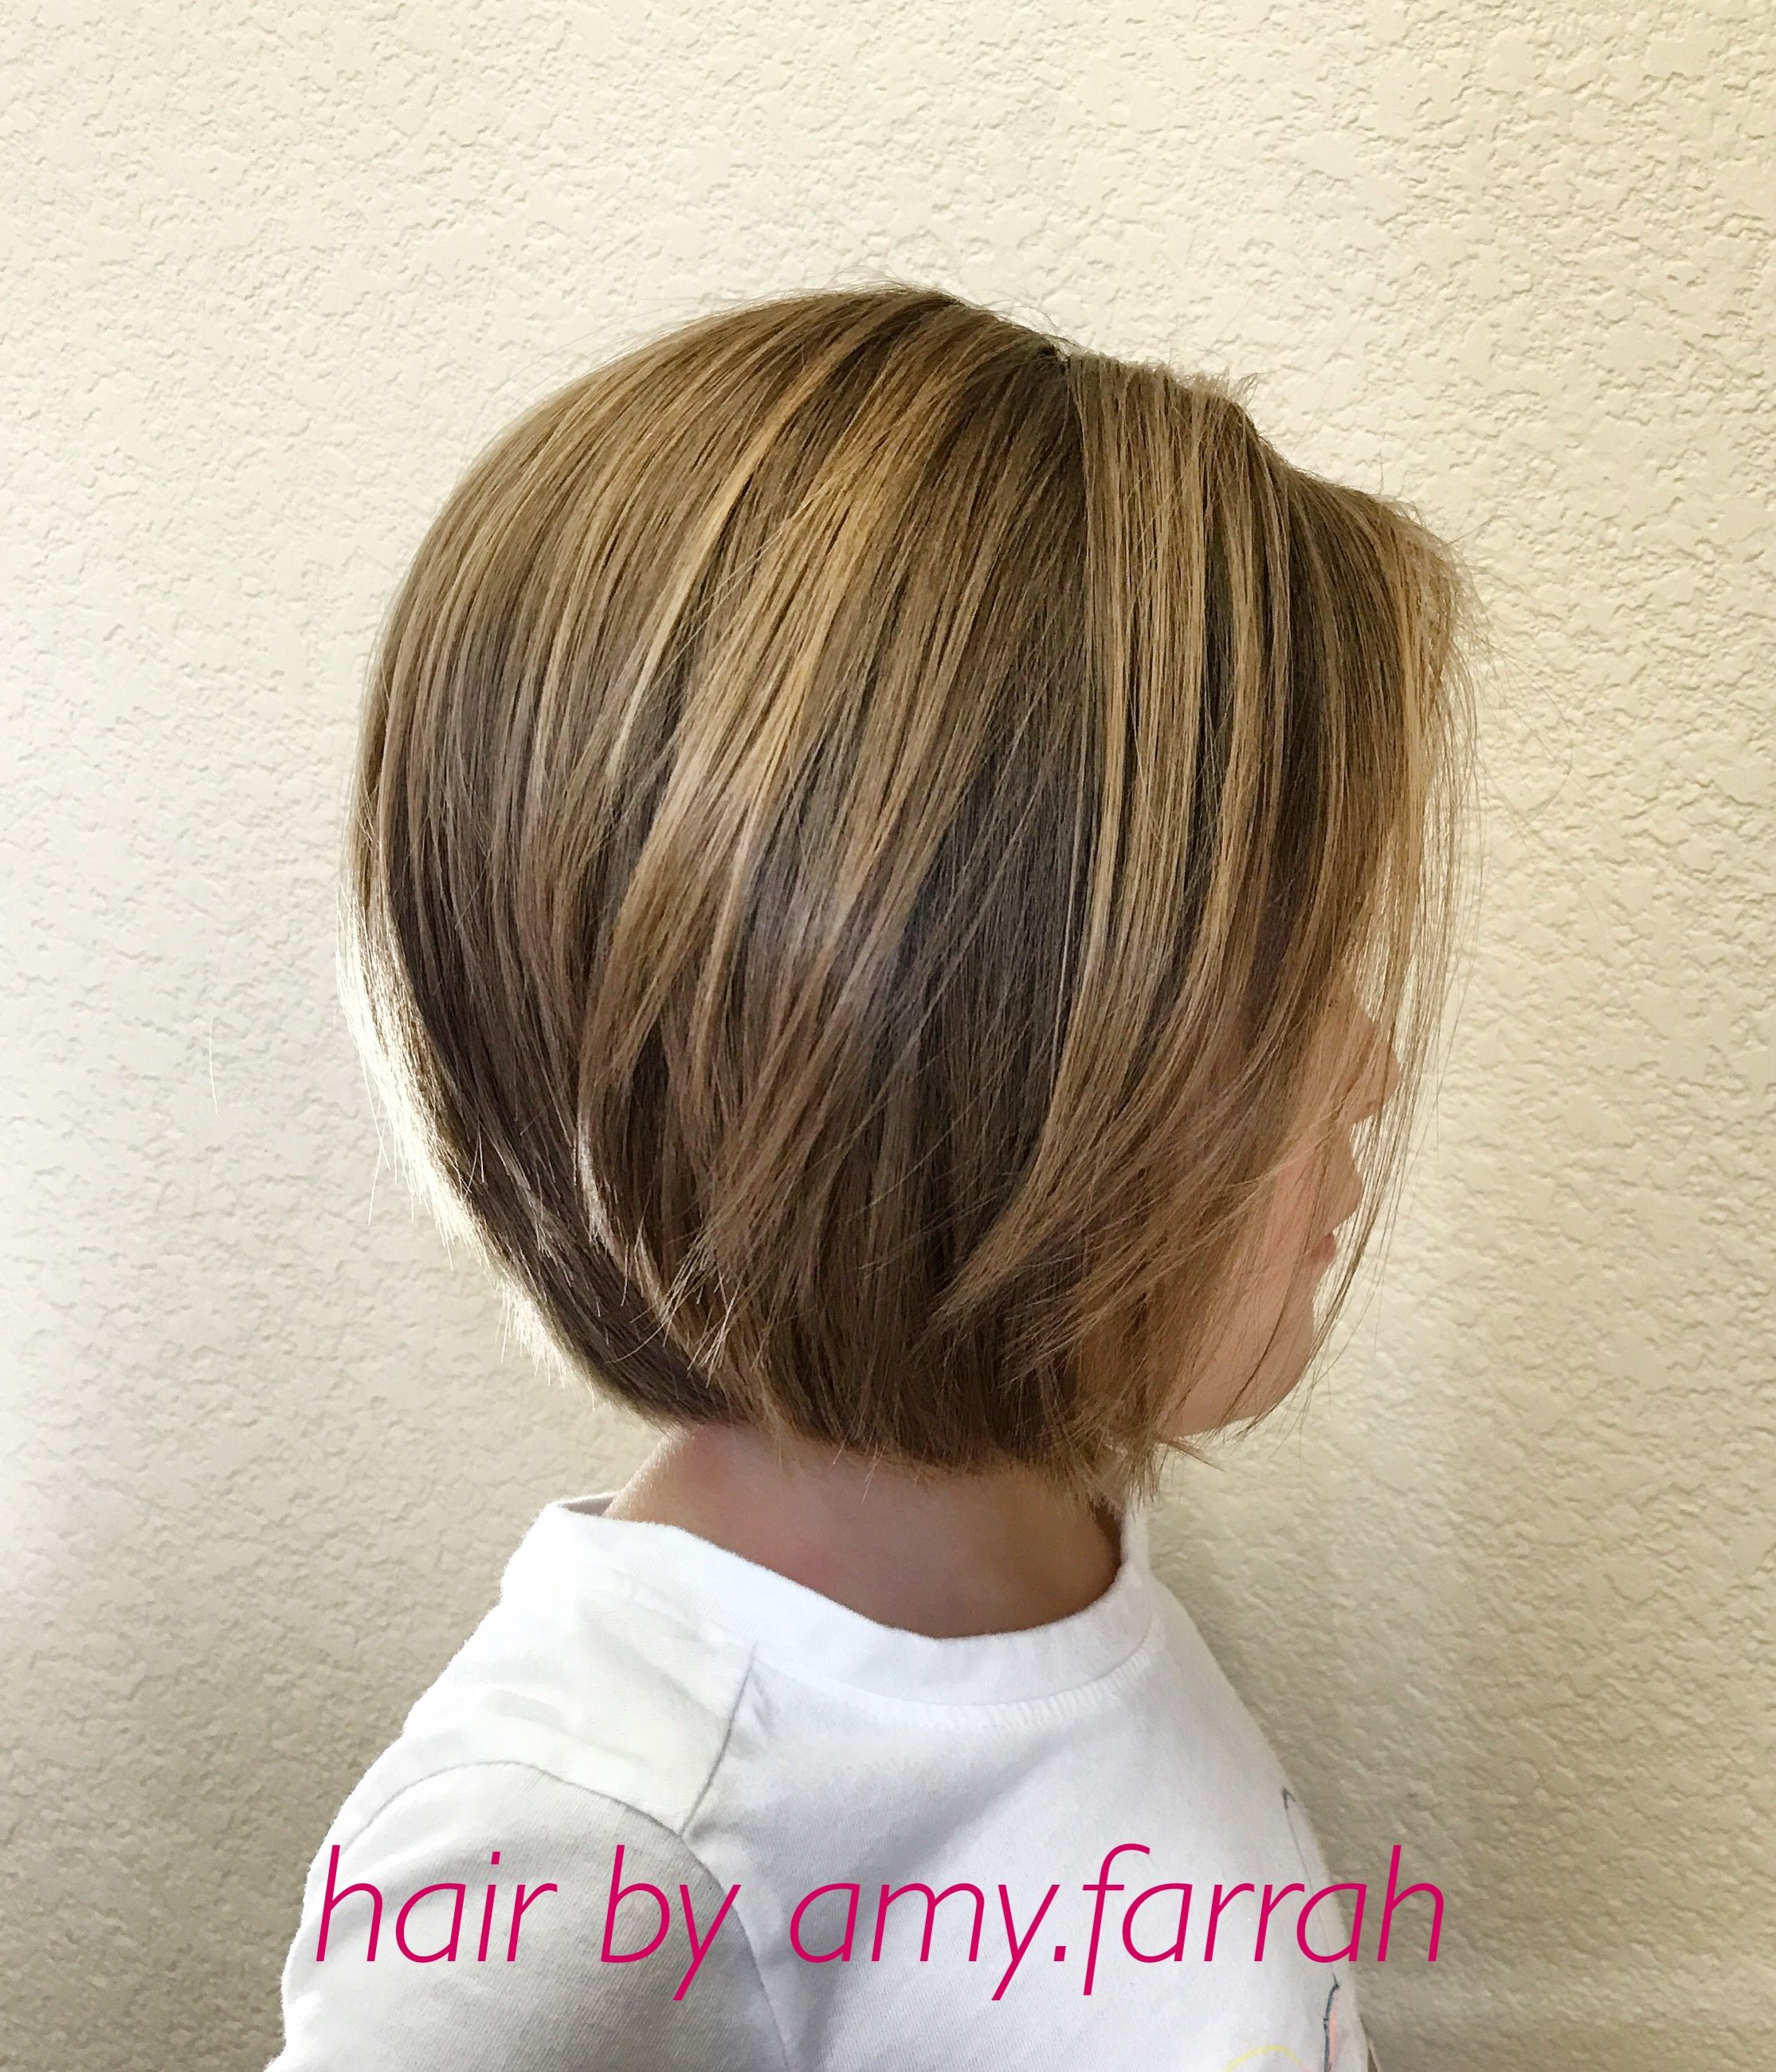 Little Girl Bob Haircut Ig Amy Farrah Little Girl Bob Haircut Bob Haircut For Girls Little Girl Haircuts